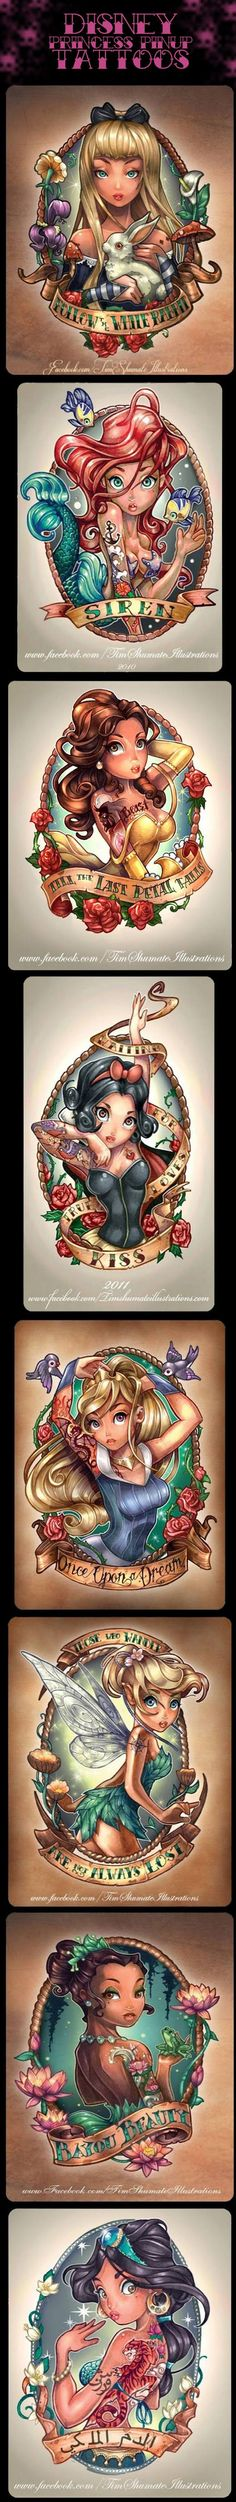 8 Very Cool Disney Princess Pinup Tattoos…  Hey . . . it's Disney . . . couldn't resist pinning.